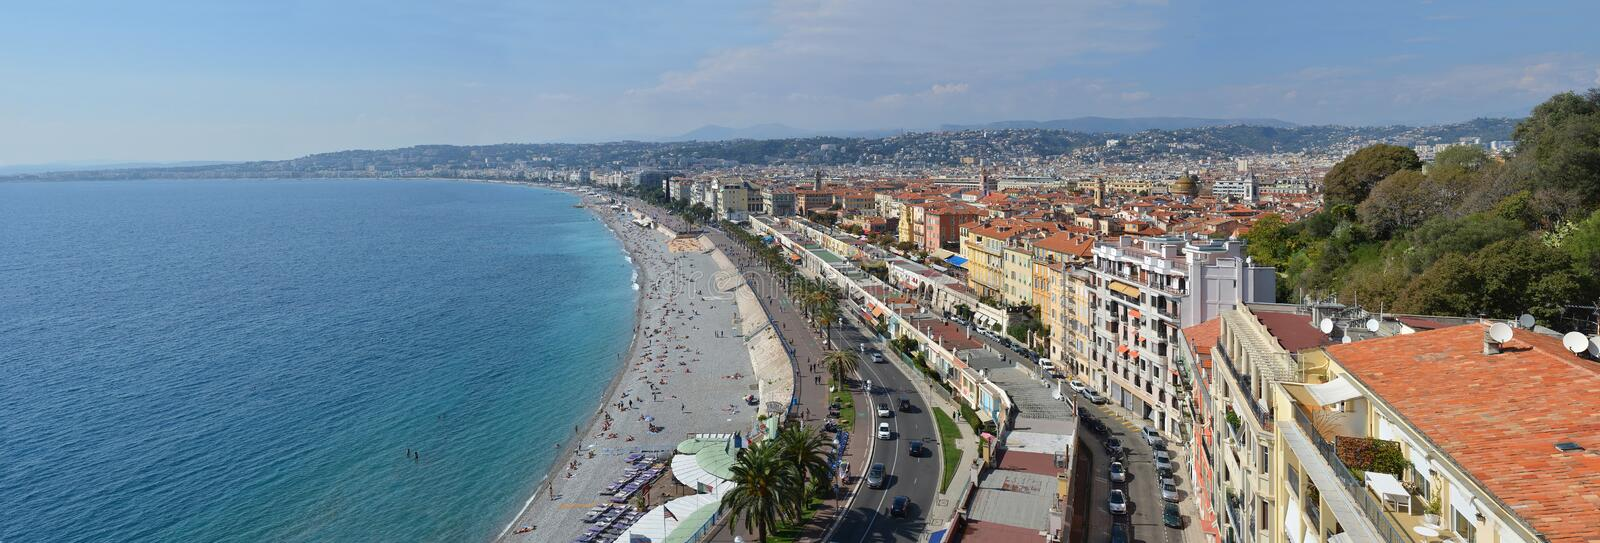 Nice Panorama of Beaches & Promenade Des Anglais, France stock images